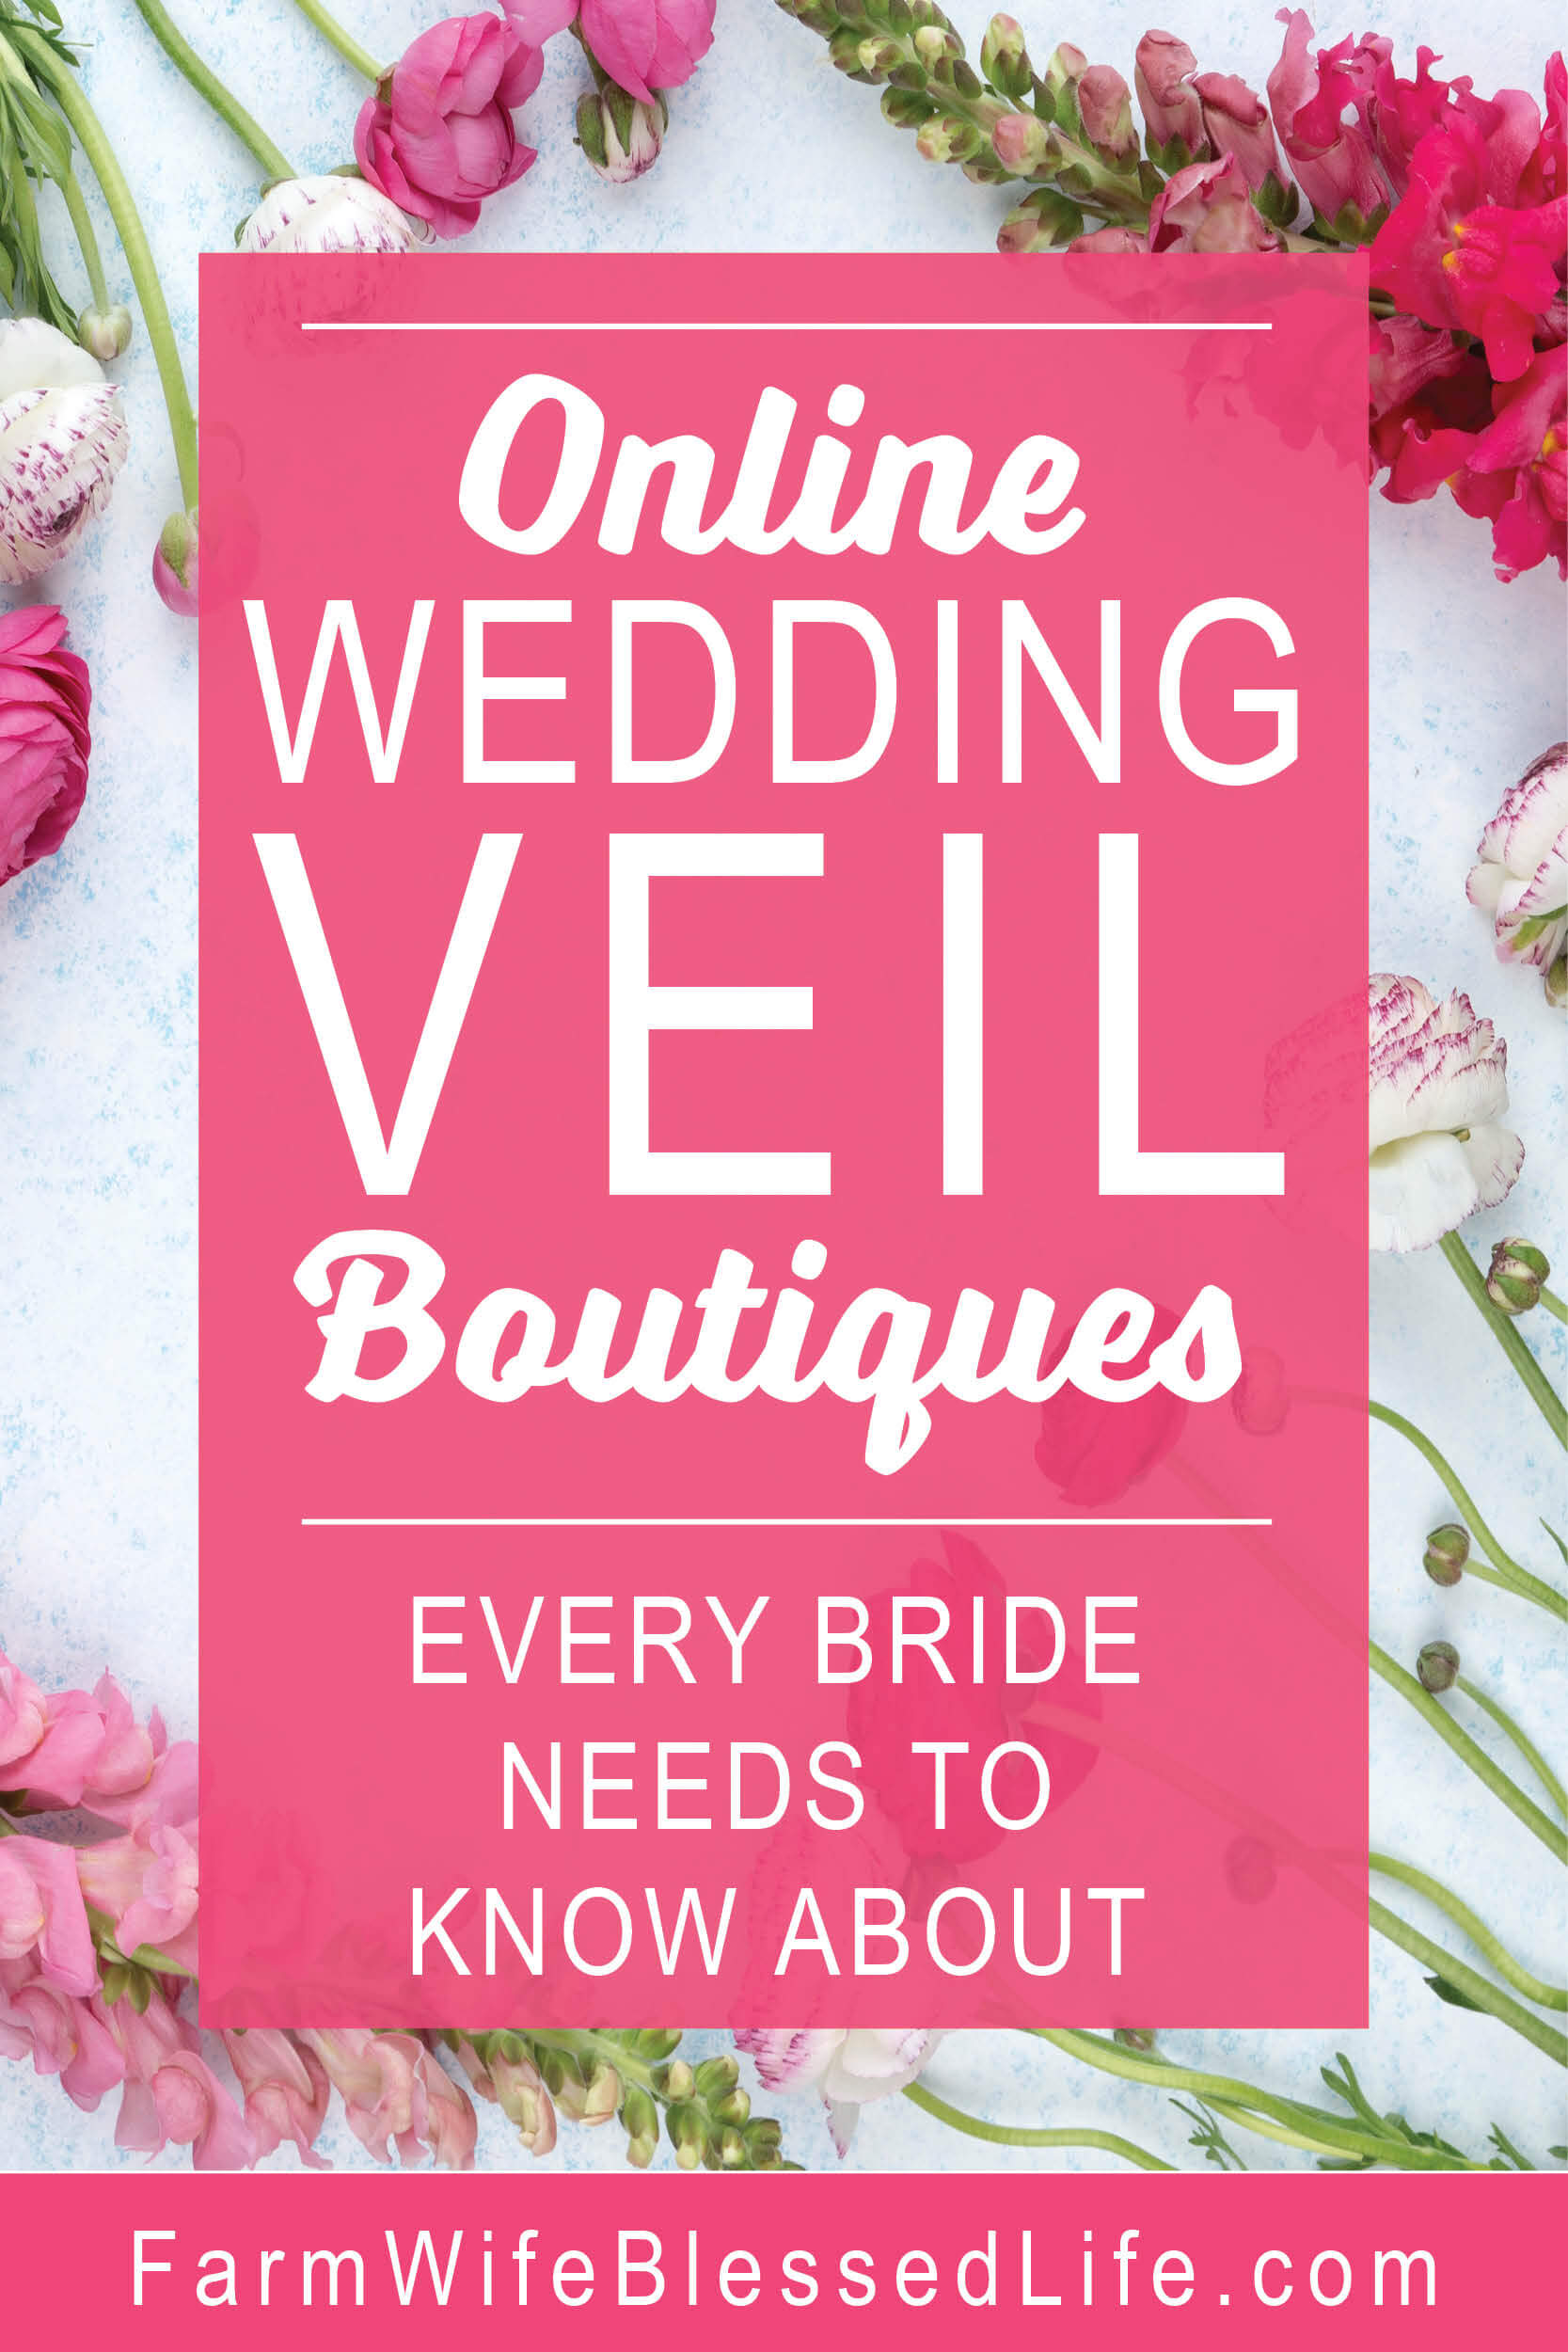 Online Wedding Veil Boutiques Every Bride Needs to Know About